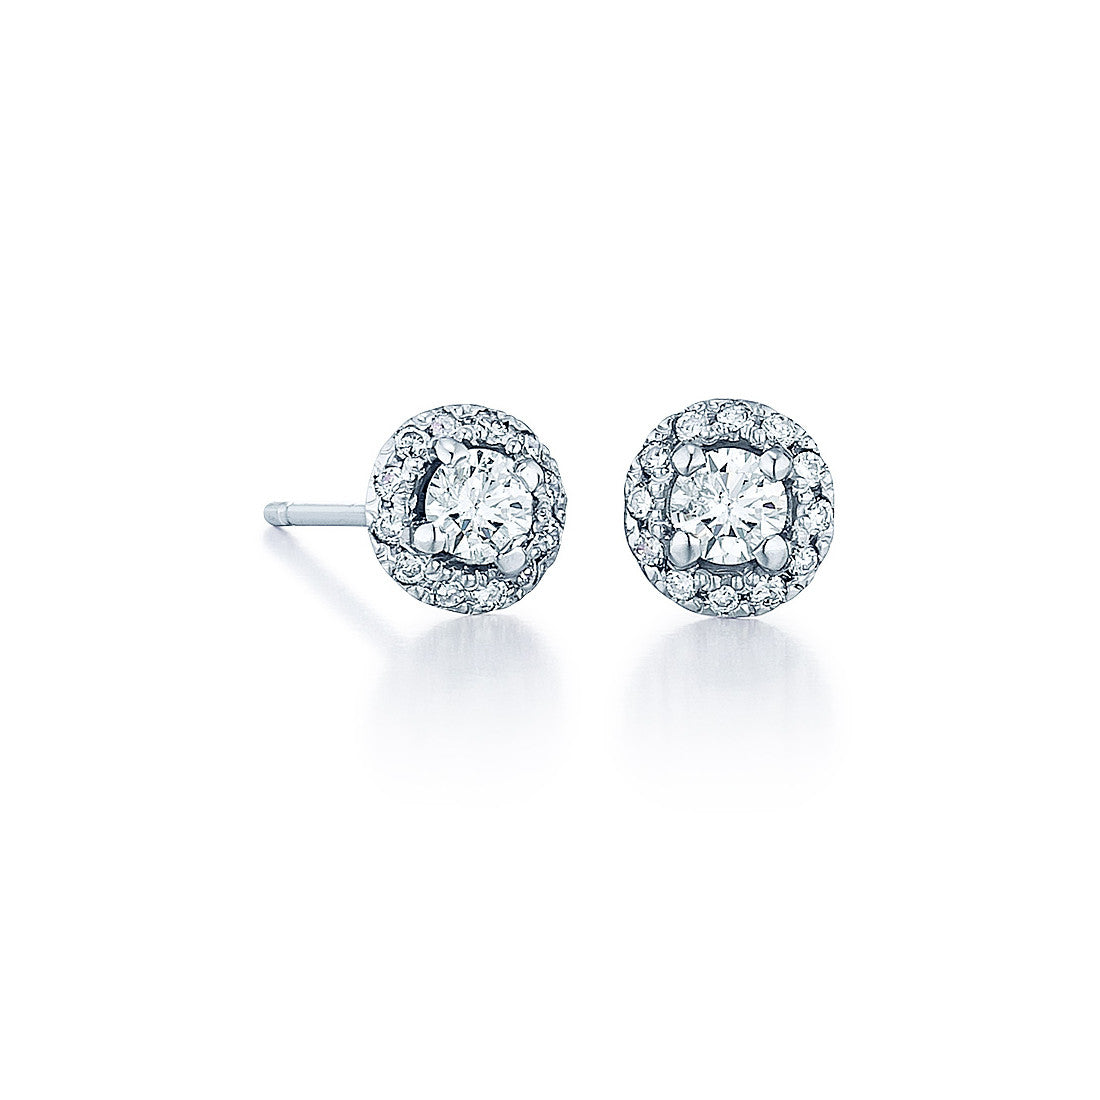 stud shop earring products earrings the copy diamond round cut jewellery of pair gld earings